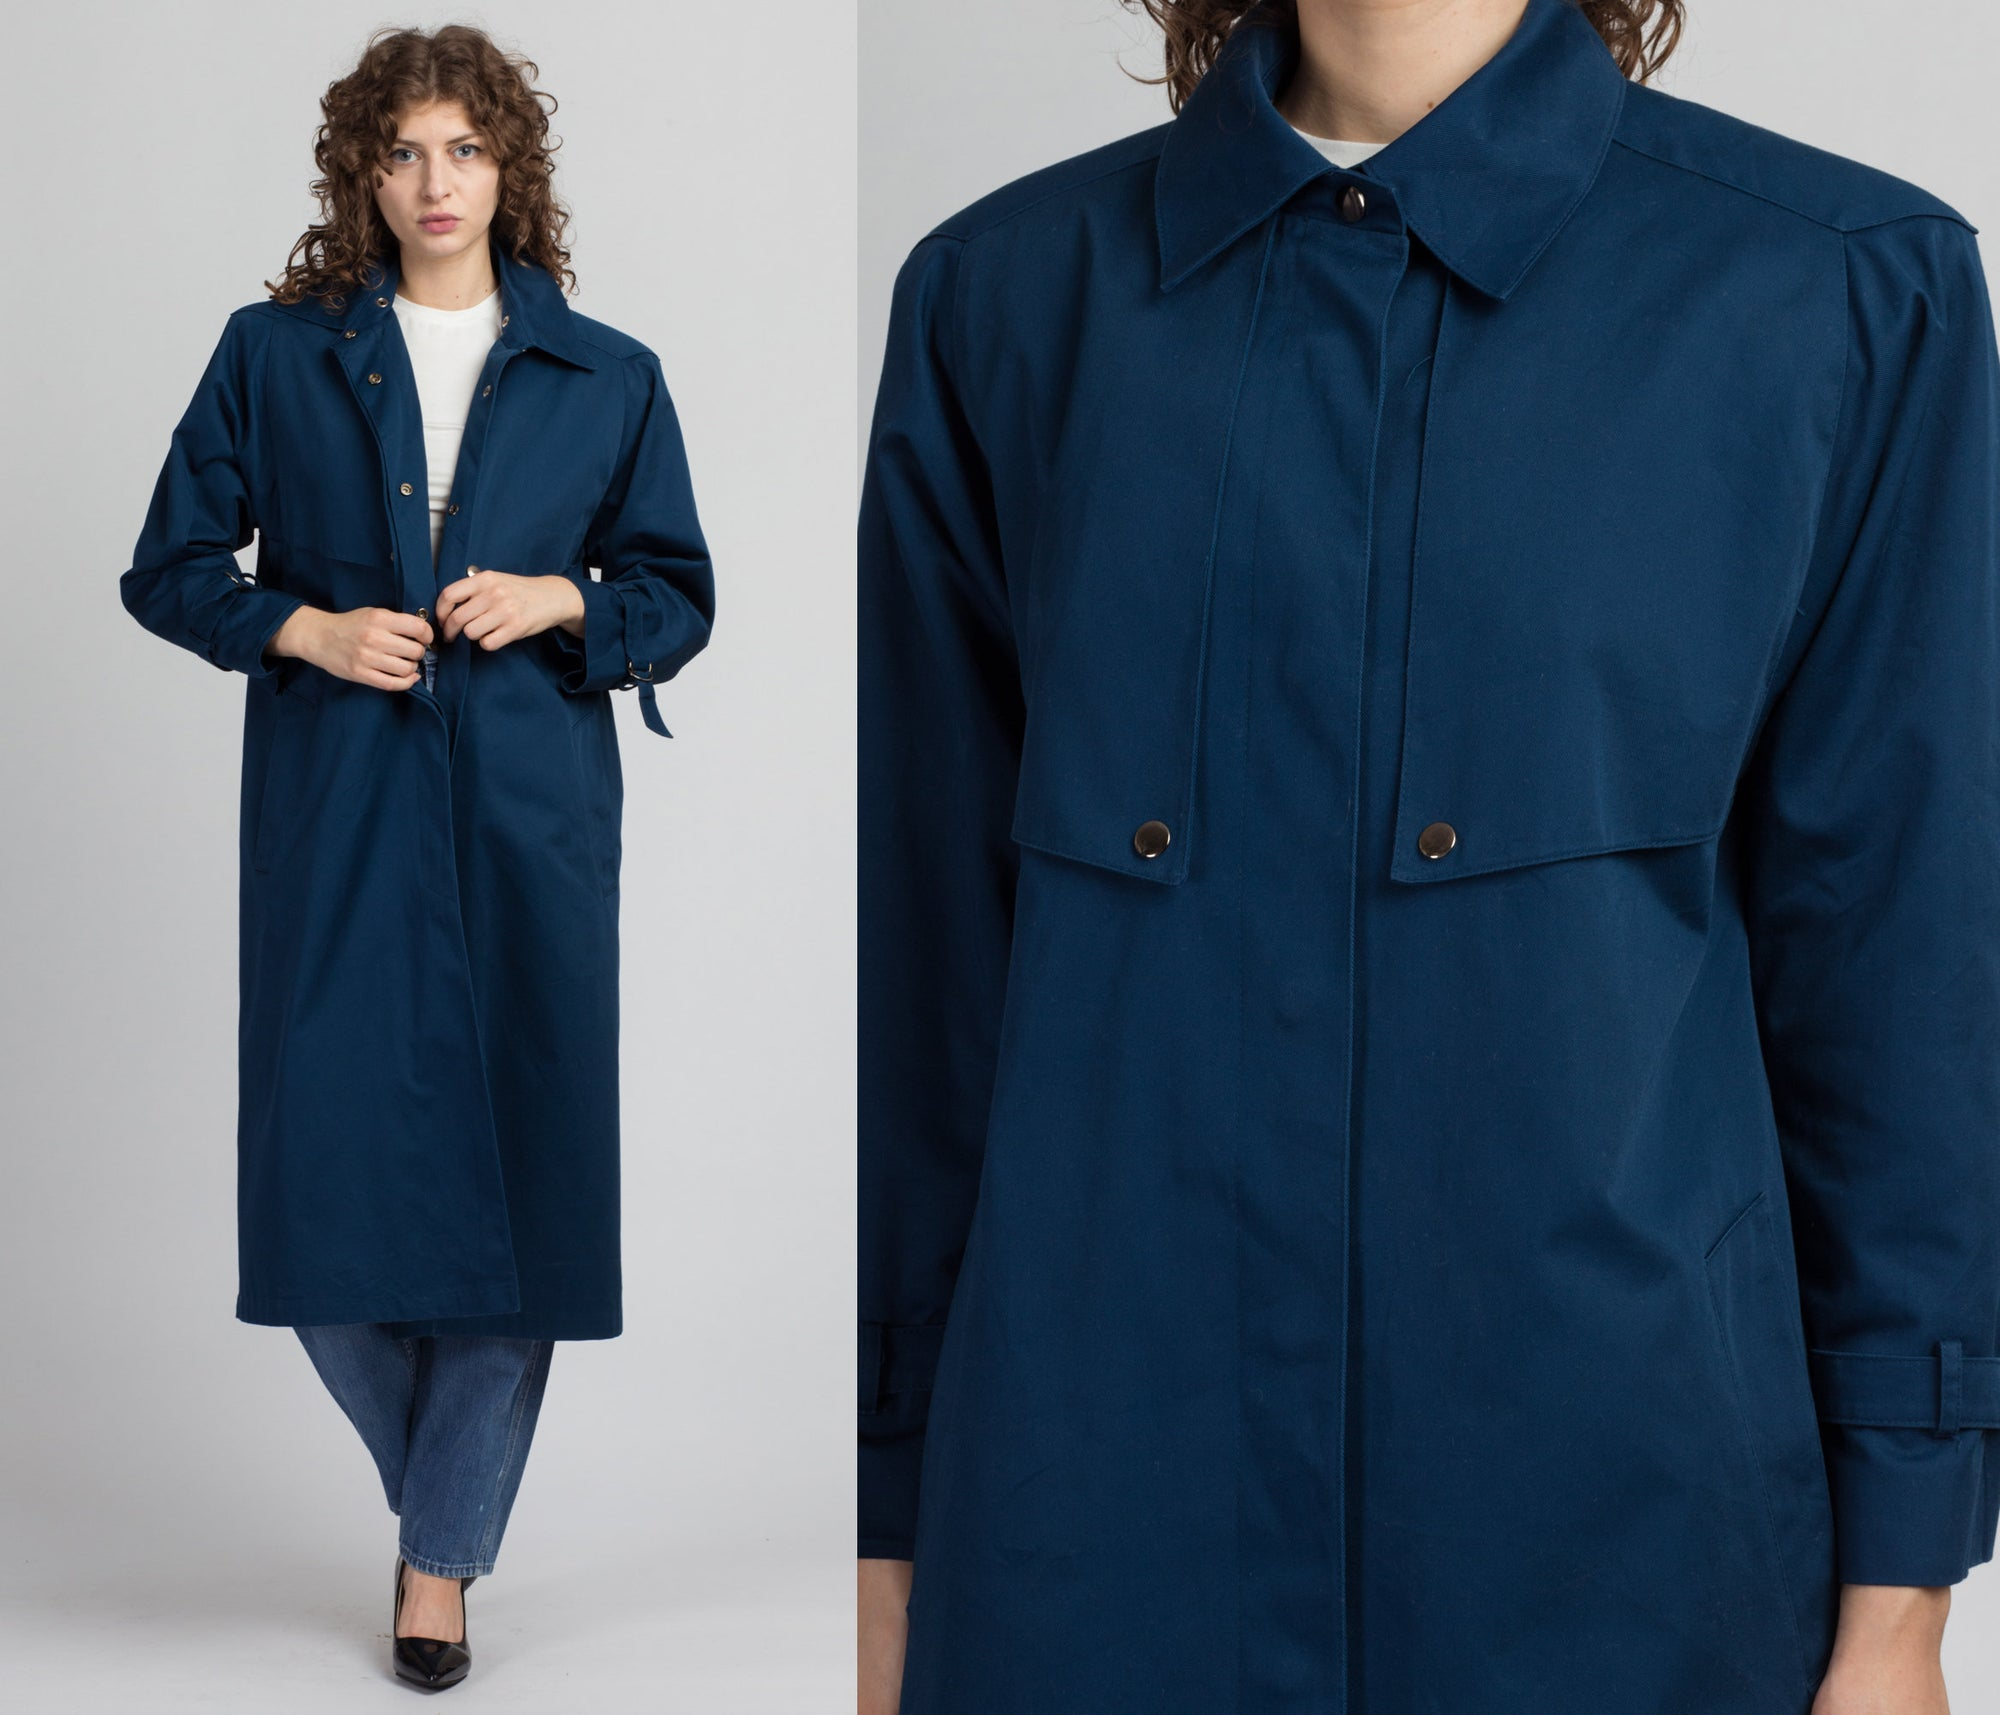 Vintage Evan Picone Long Trench Coat - Small to Petite Medium